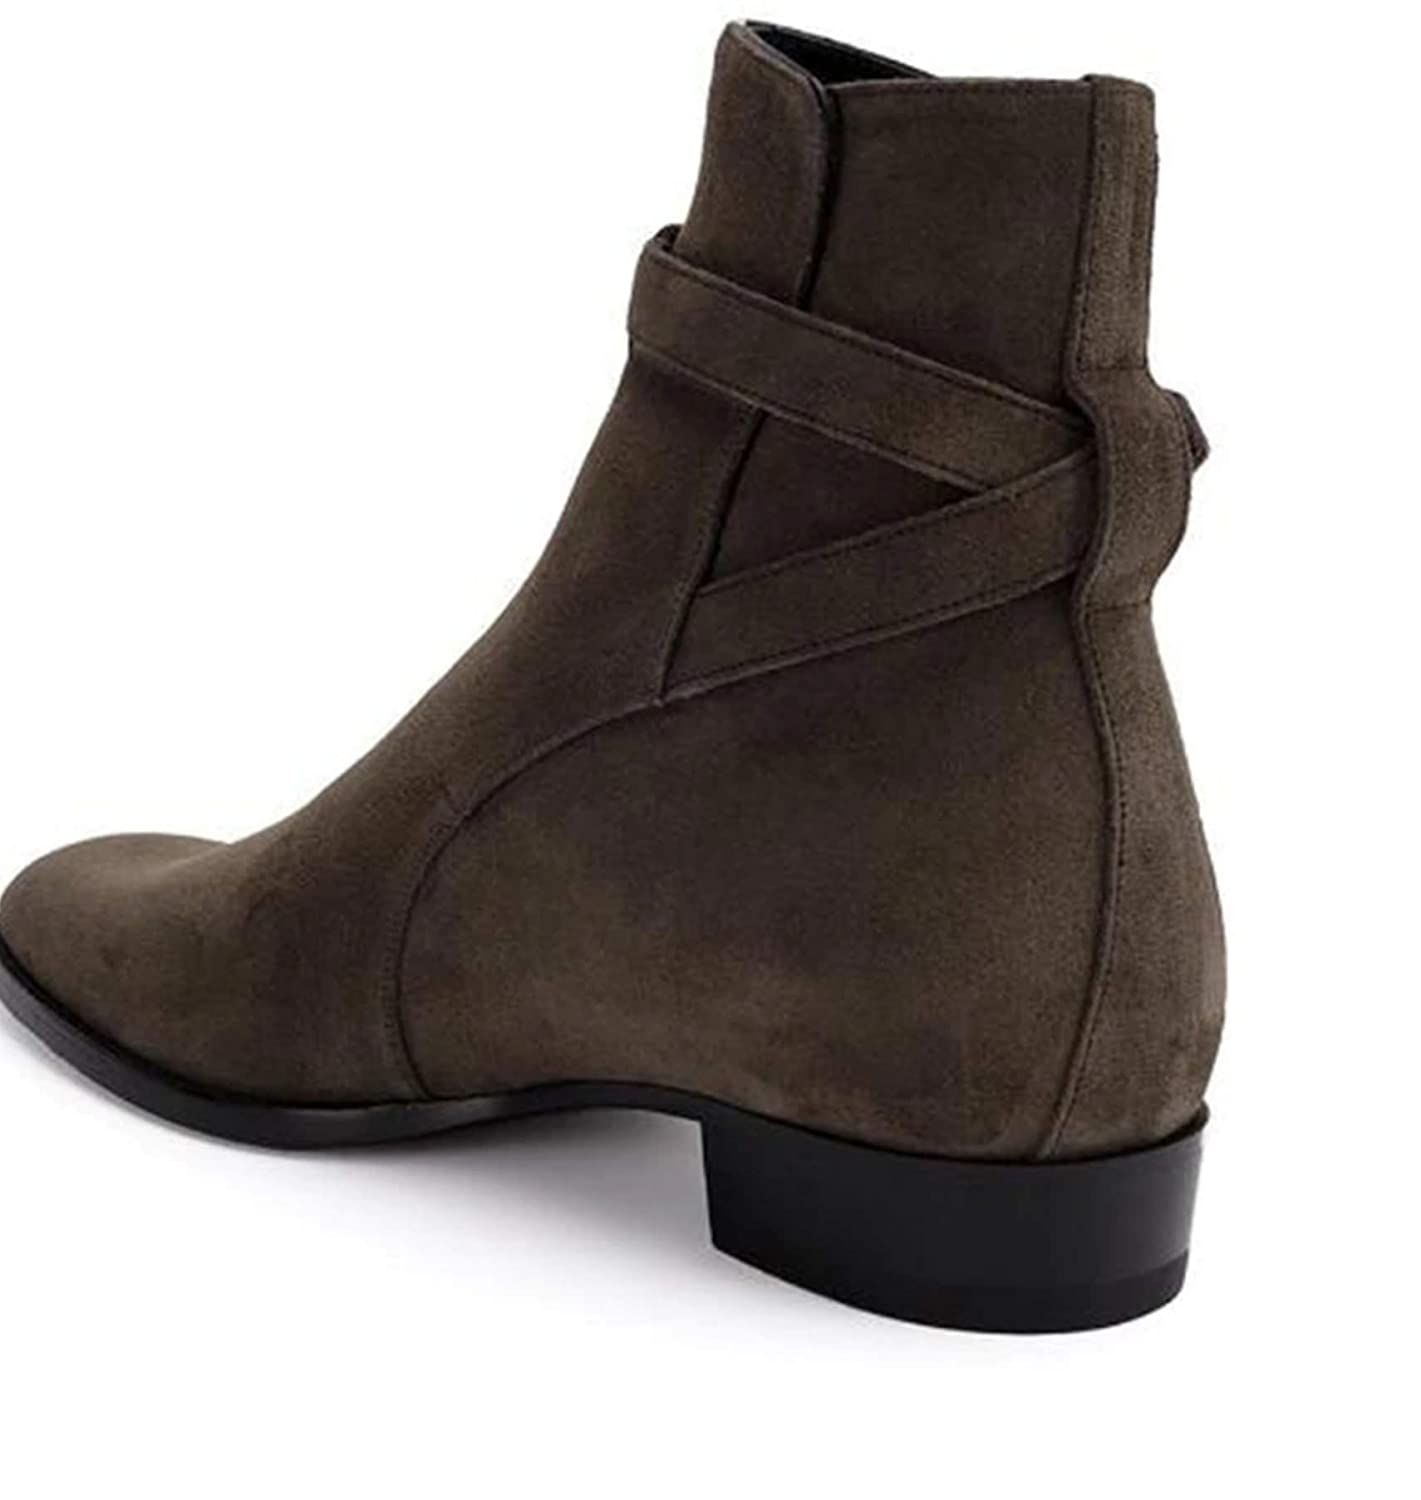 Royal fashionist Brown Suede Harness Boots